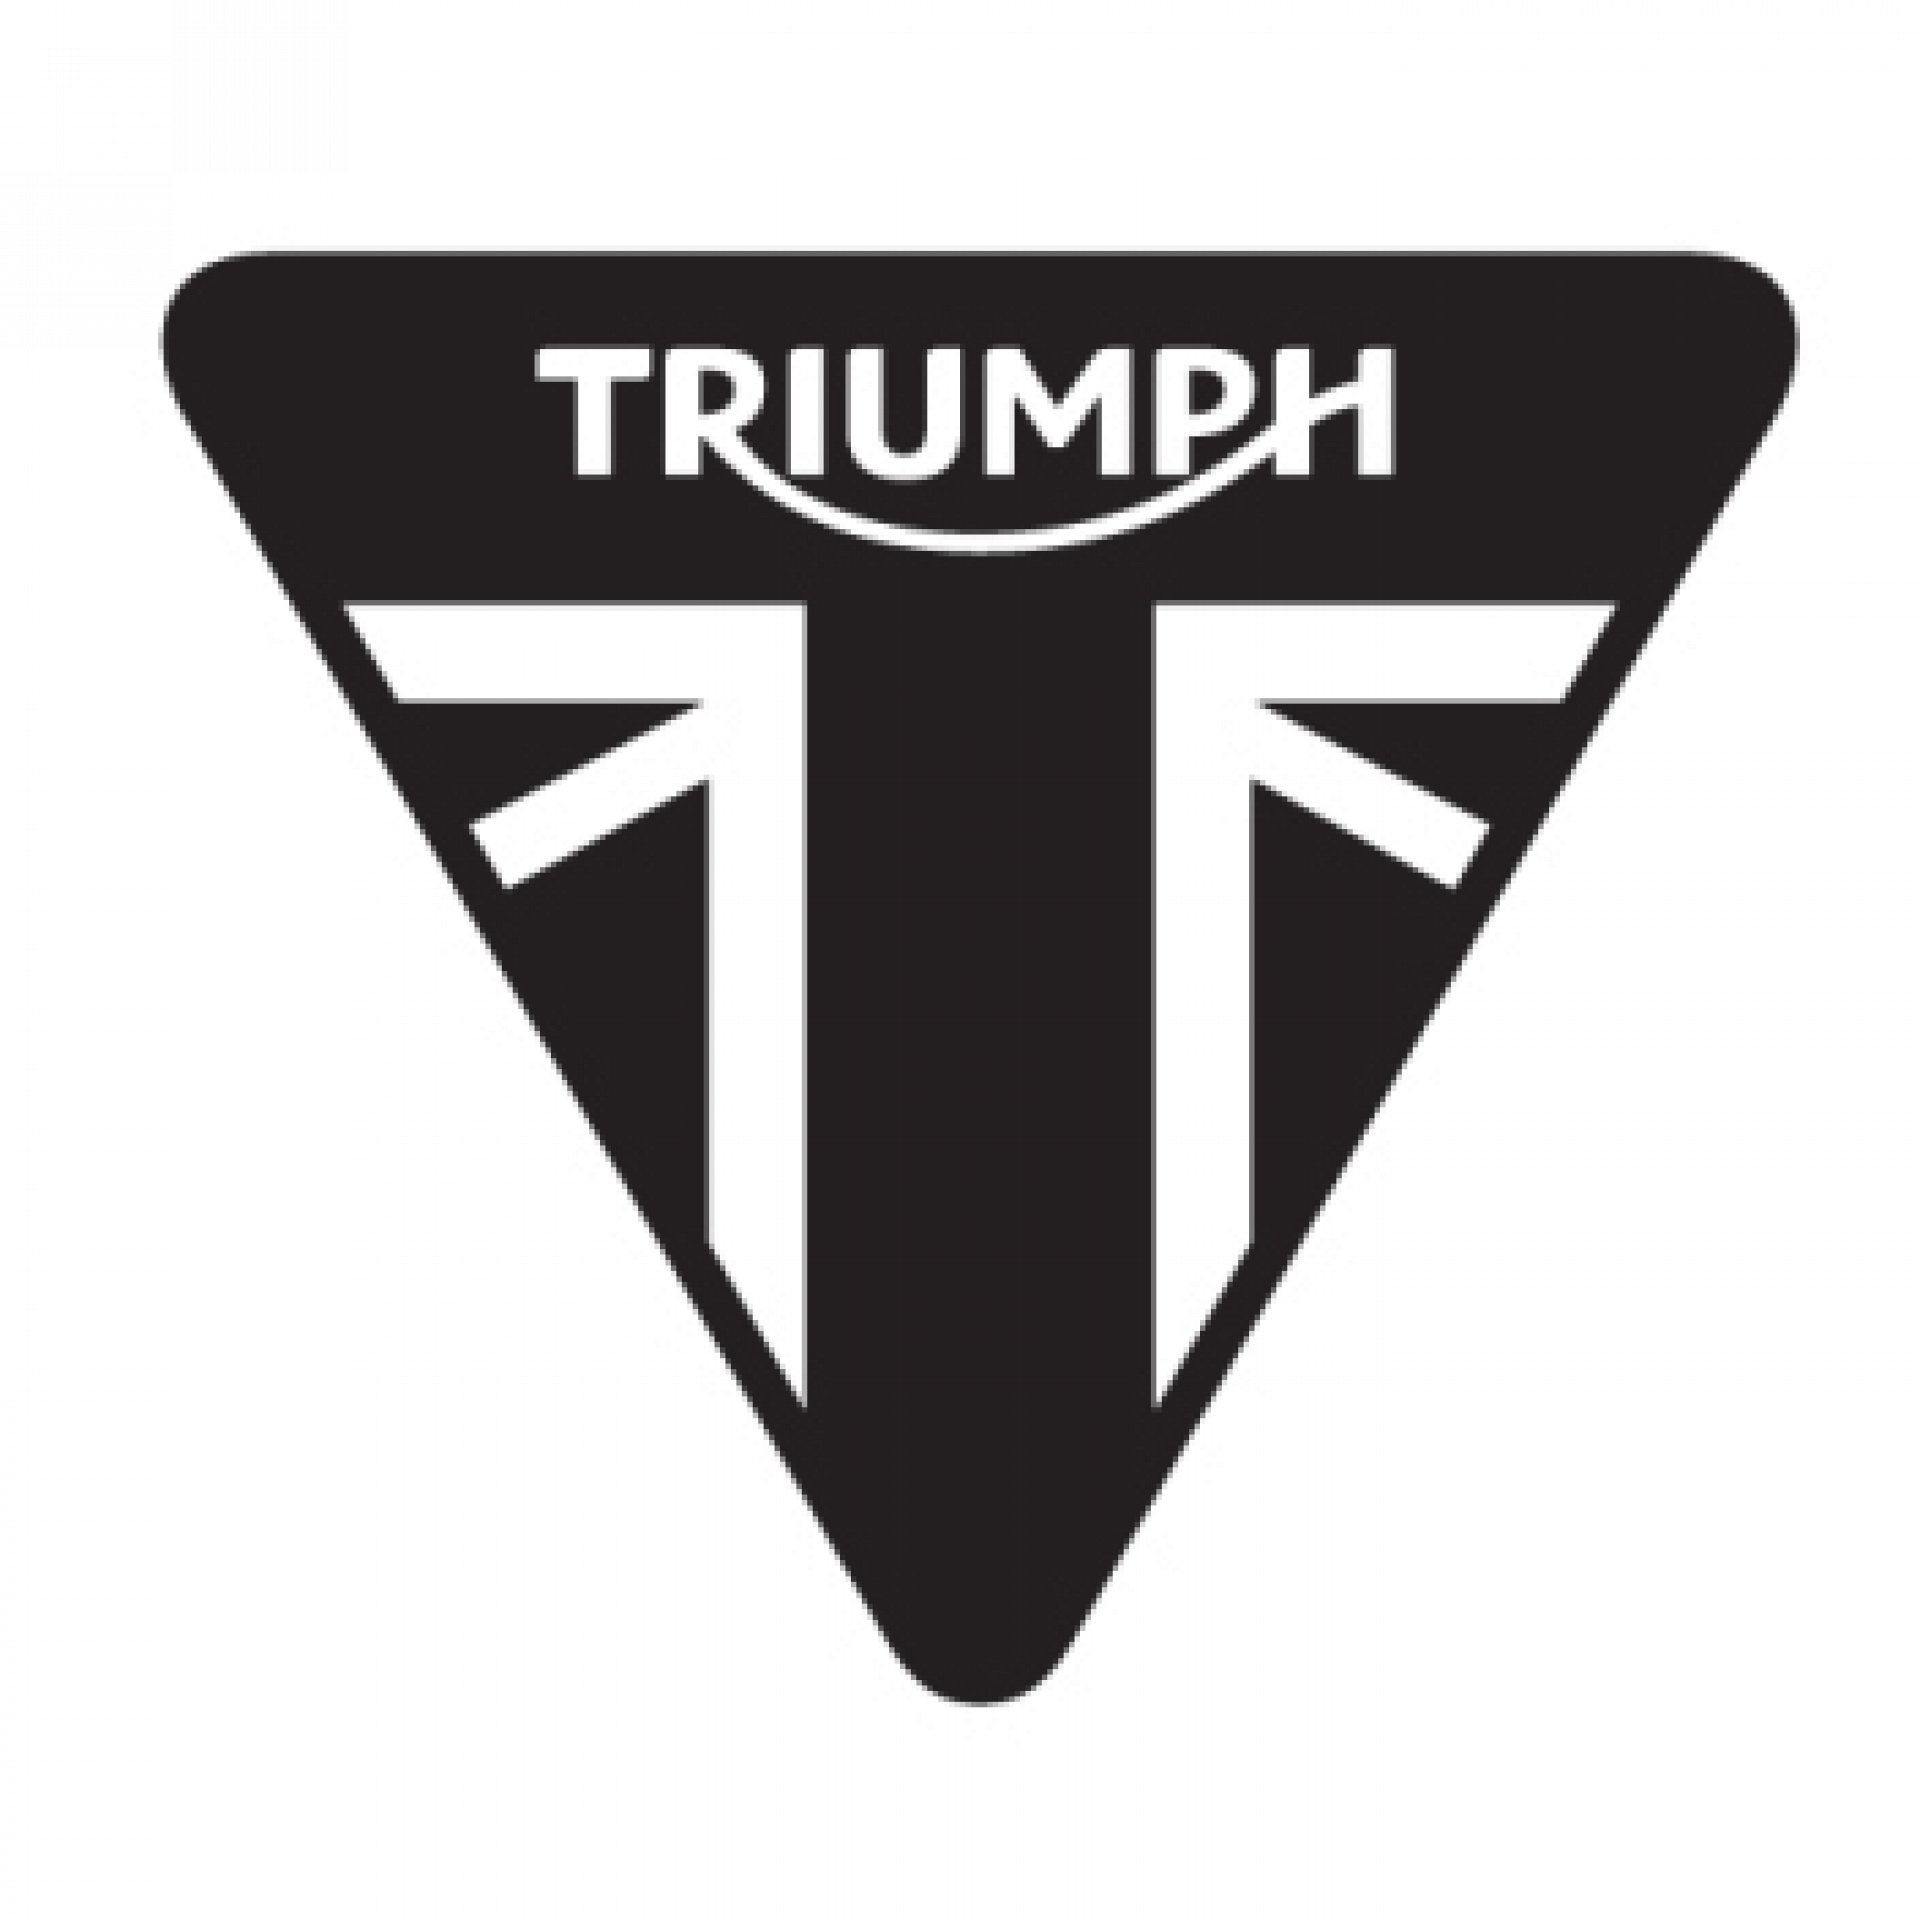 Triumph Genuine Parts for sale